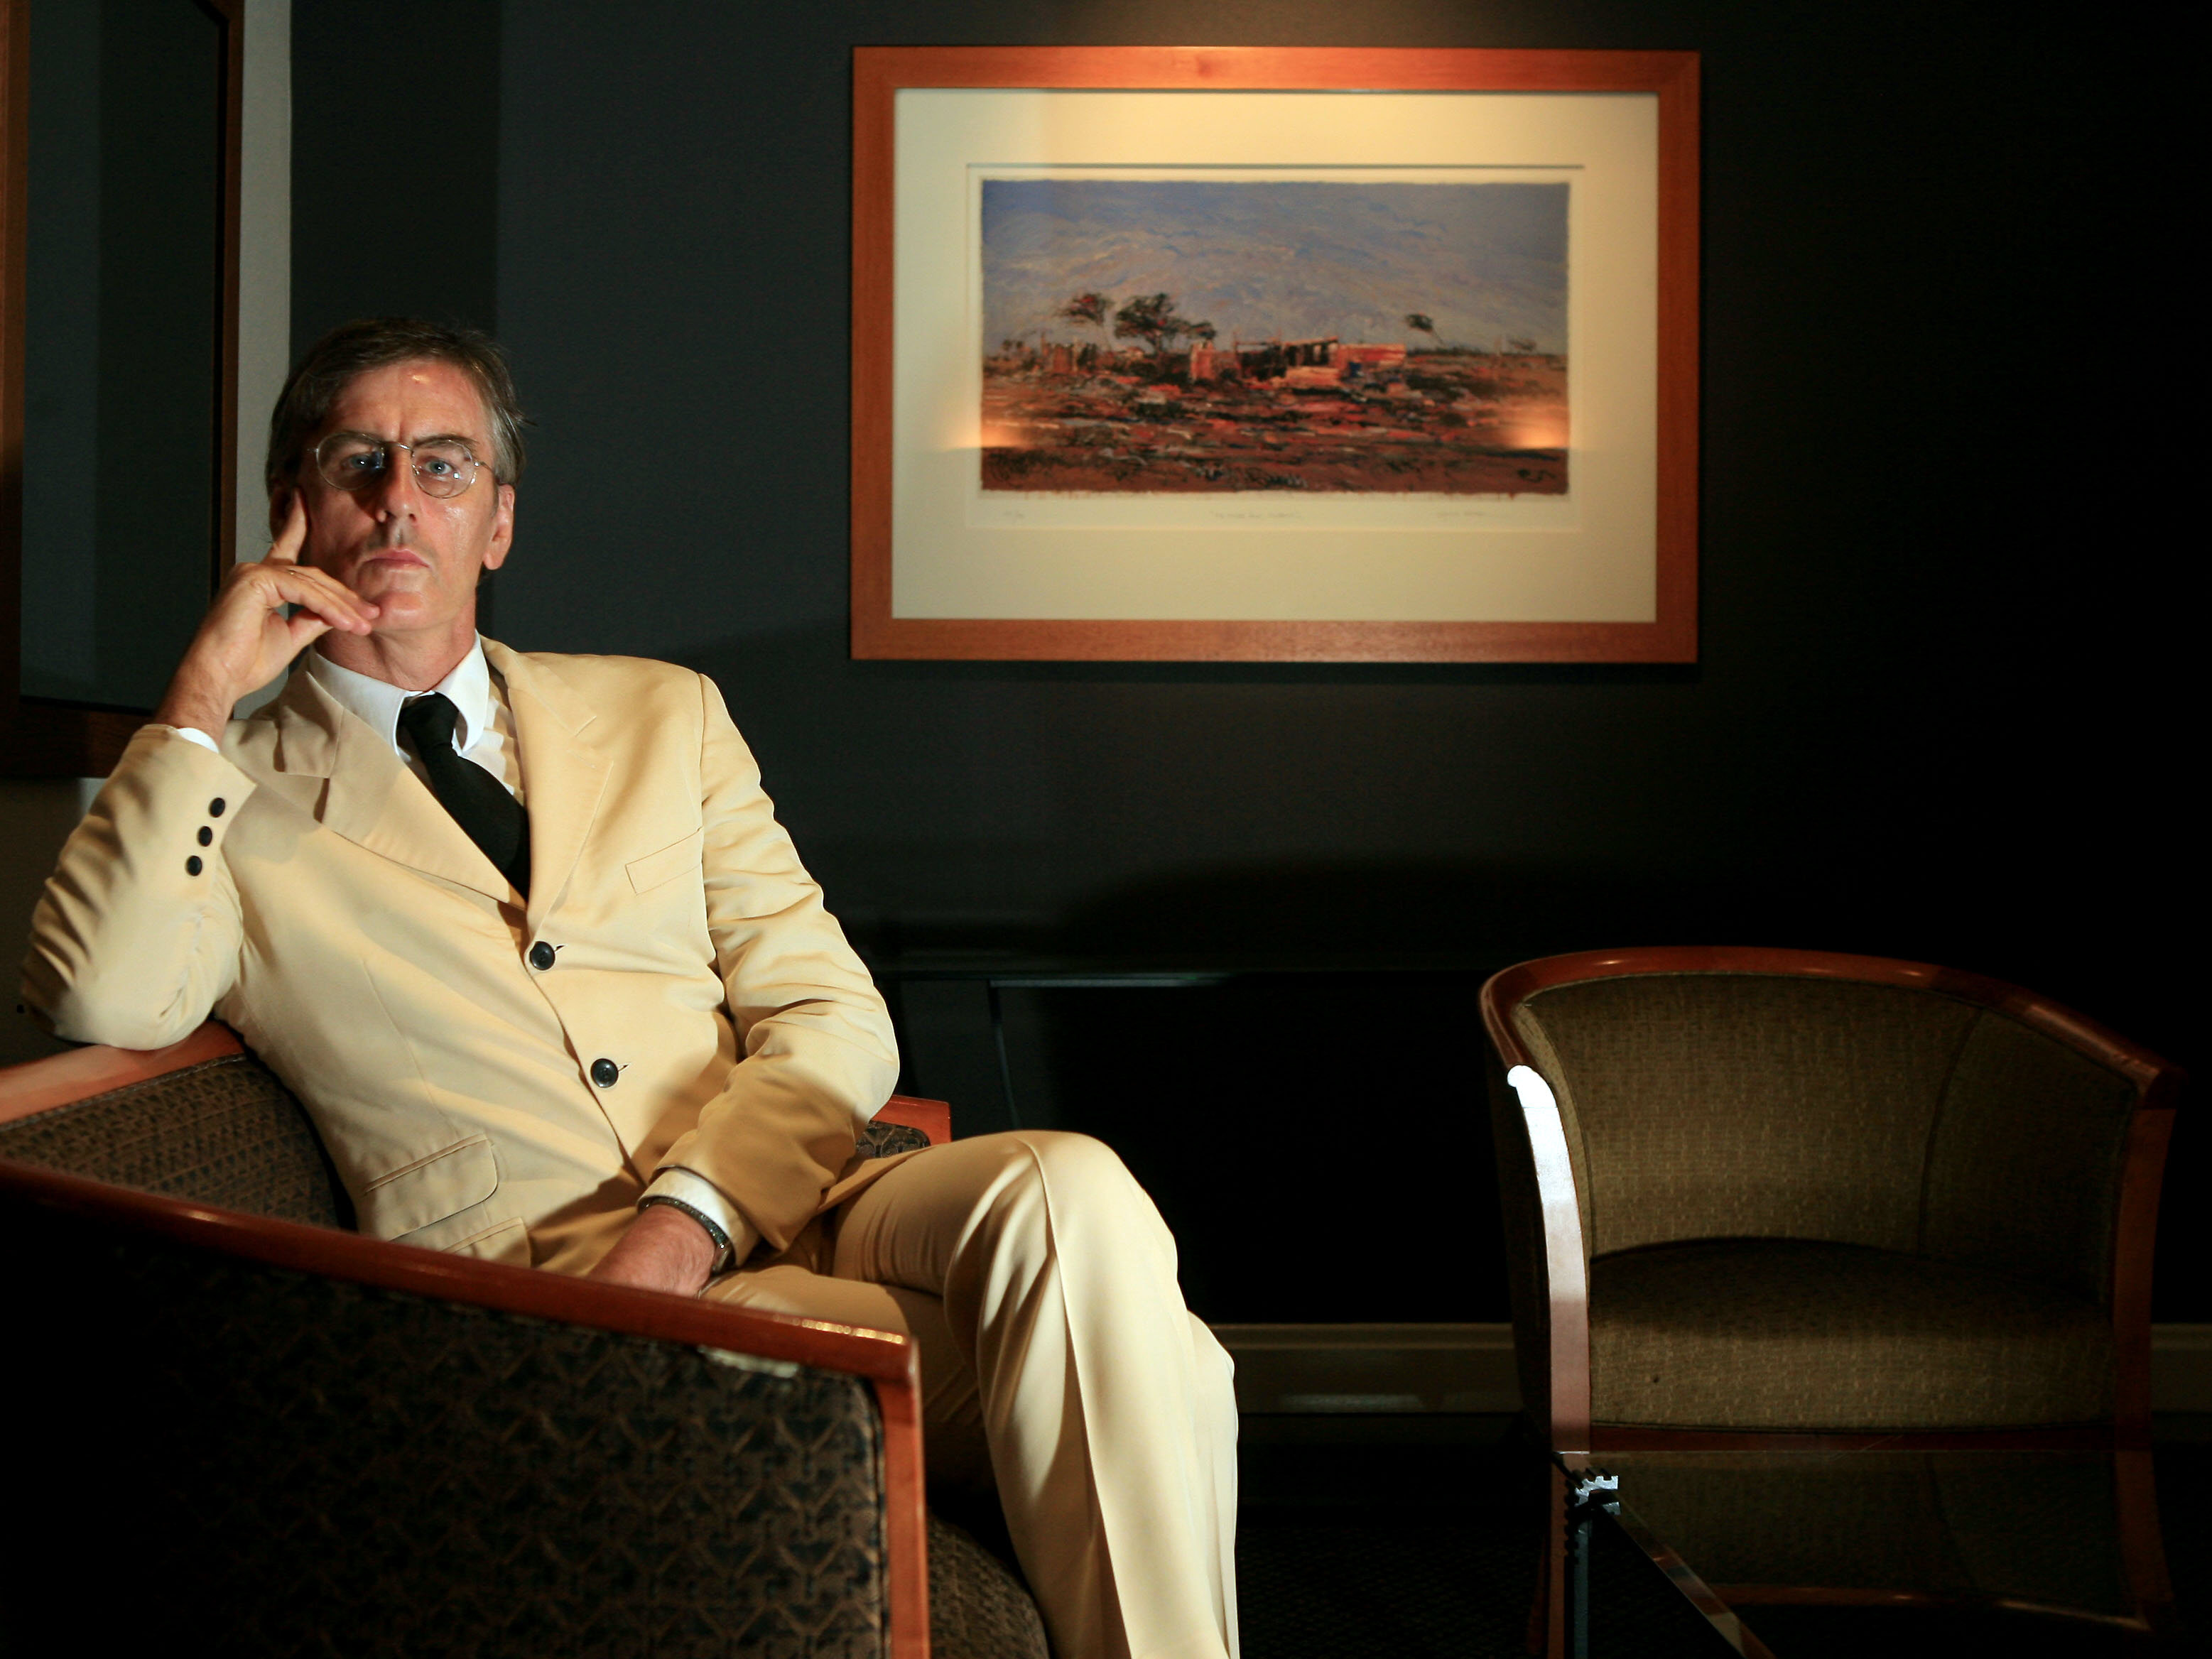 (AUSTRALIA & NEW ZEALAND OUT) Music critic Robert Forster, winner of the Pascall Prize for Criticism, in the lobby of a S